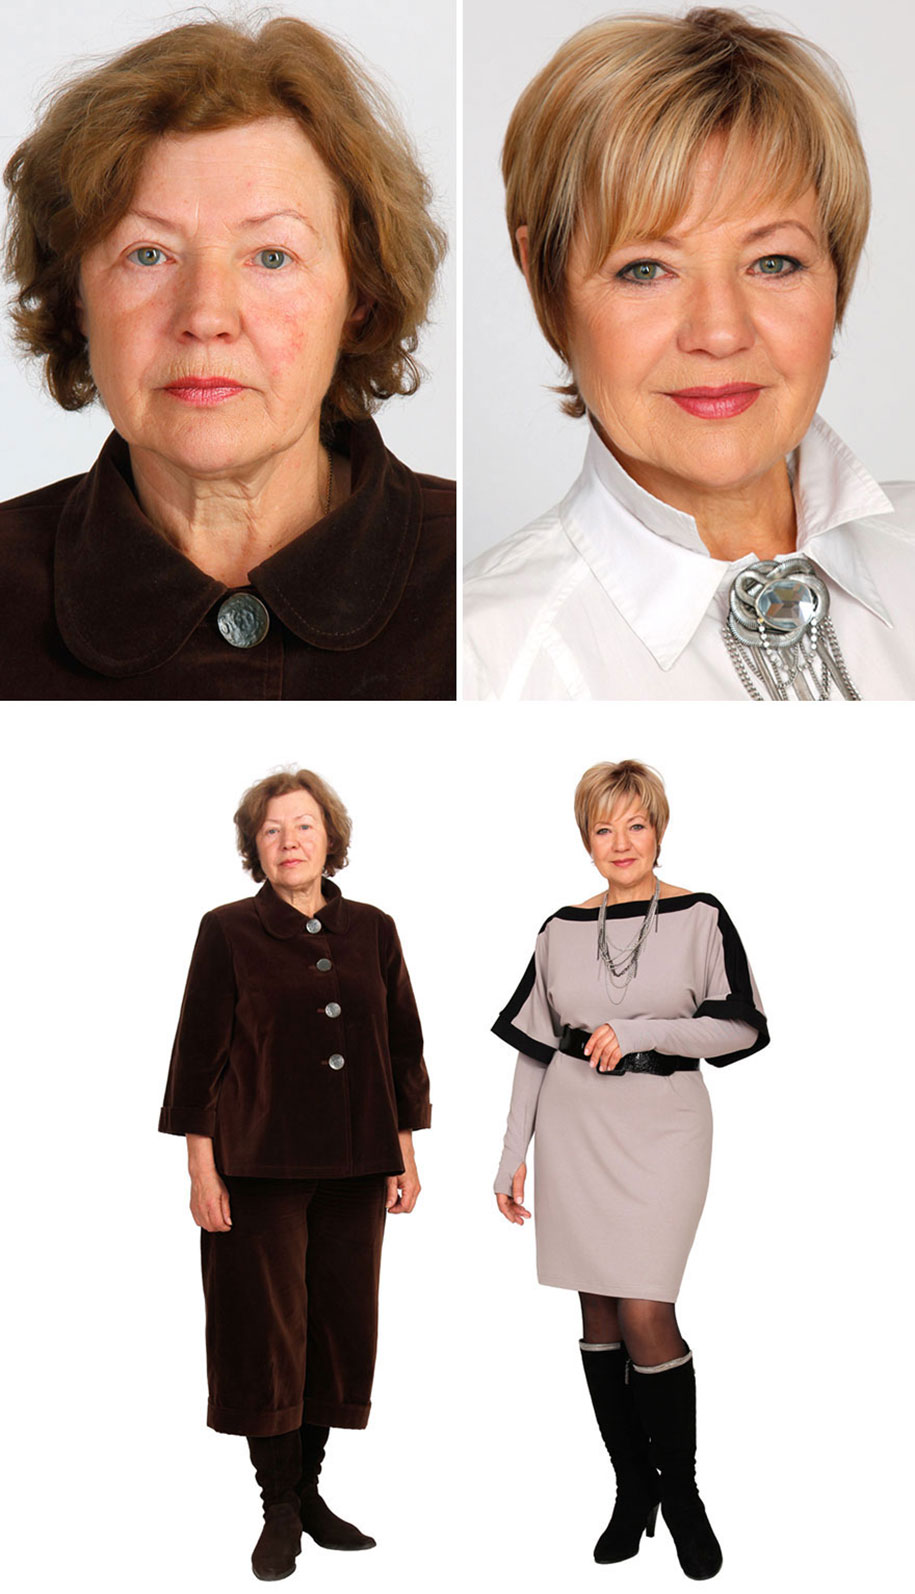 before-after-makeup-beauty-in-every-woman-konstantin-bogomolov-6